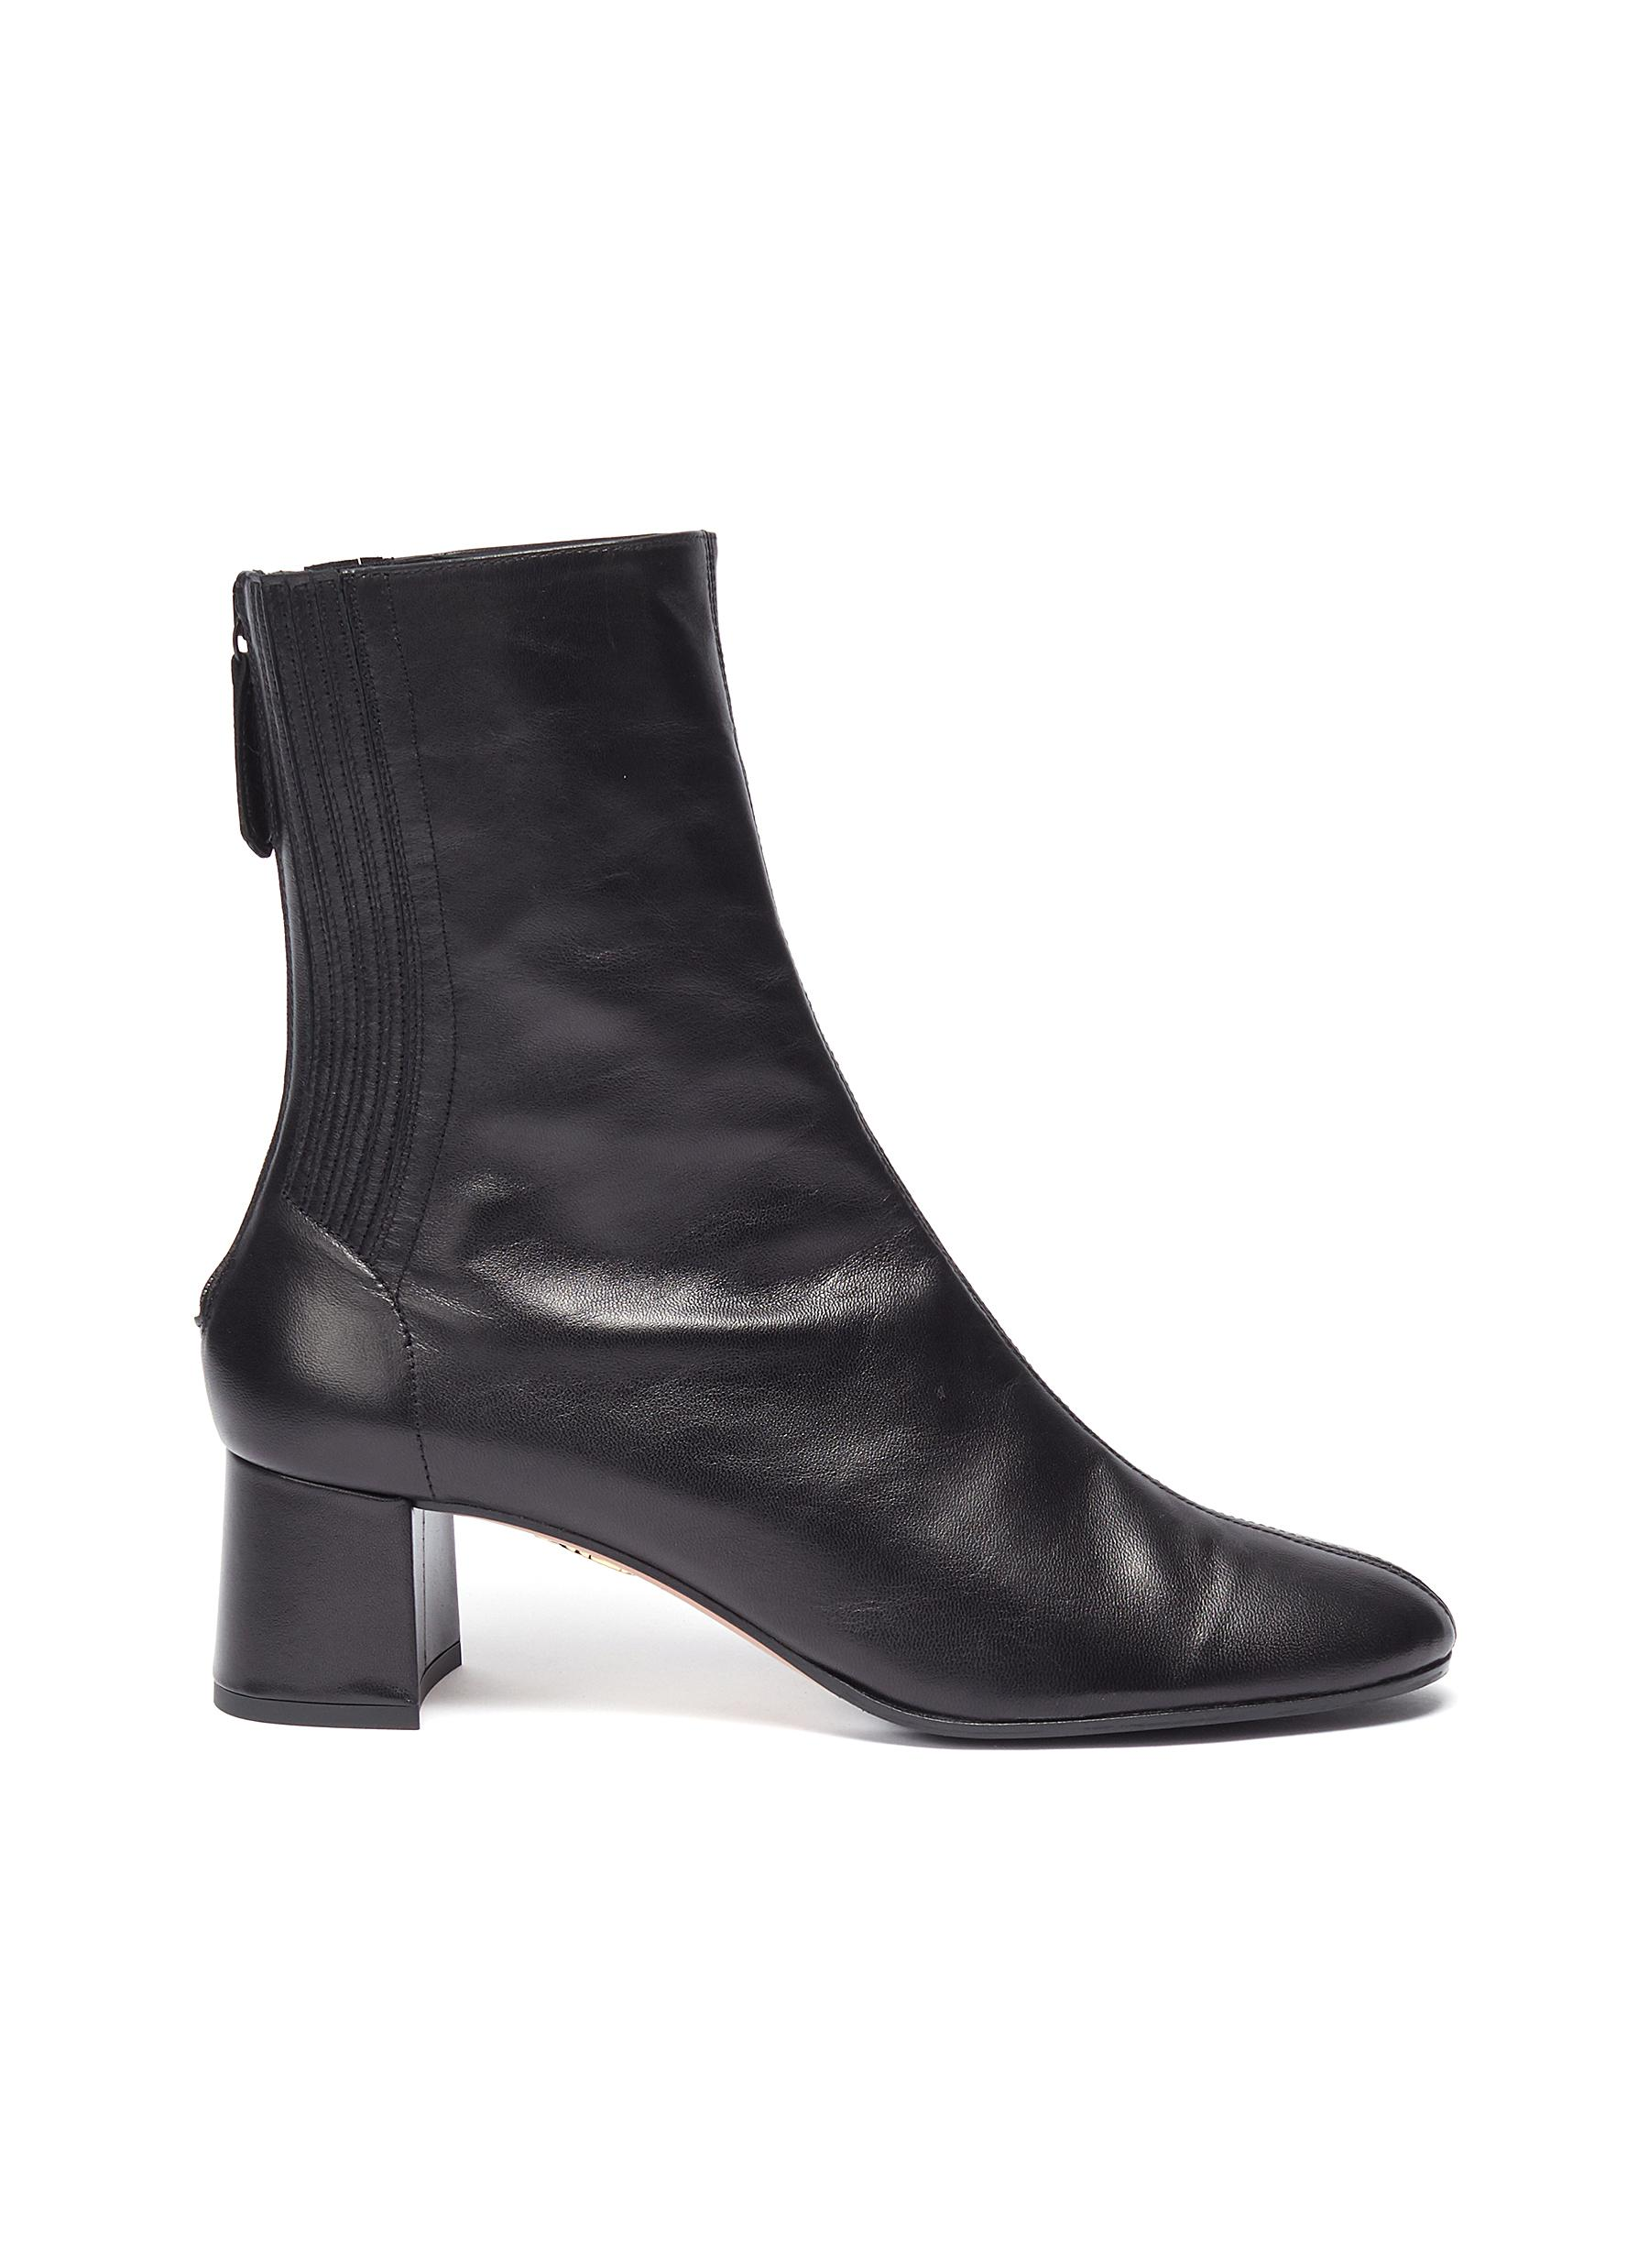 Aquazzura Boots Saint Honore panelled leather block heel ankle boots